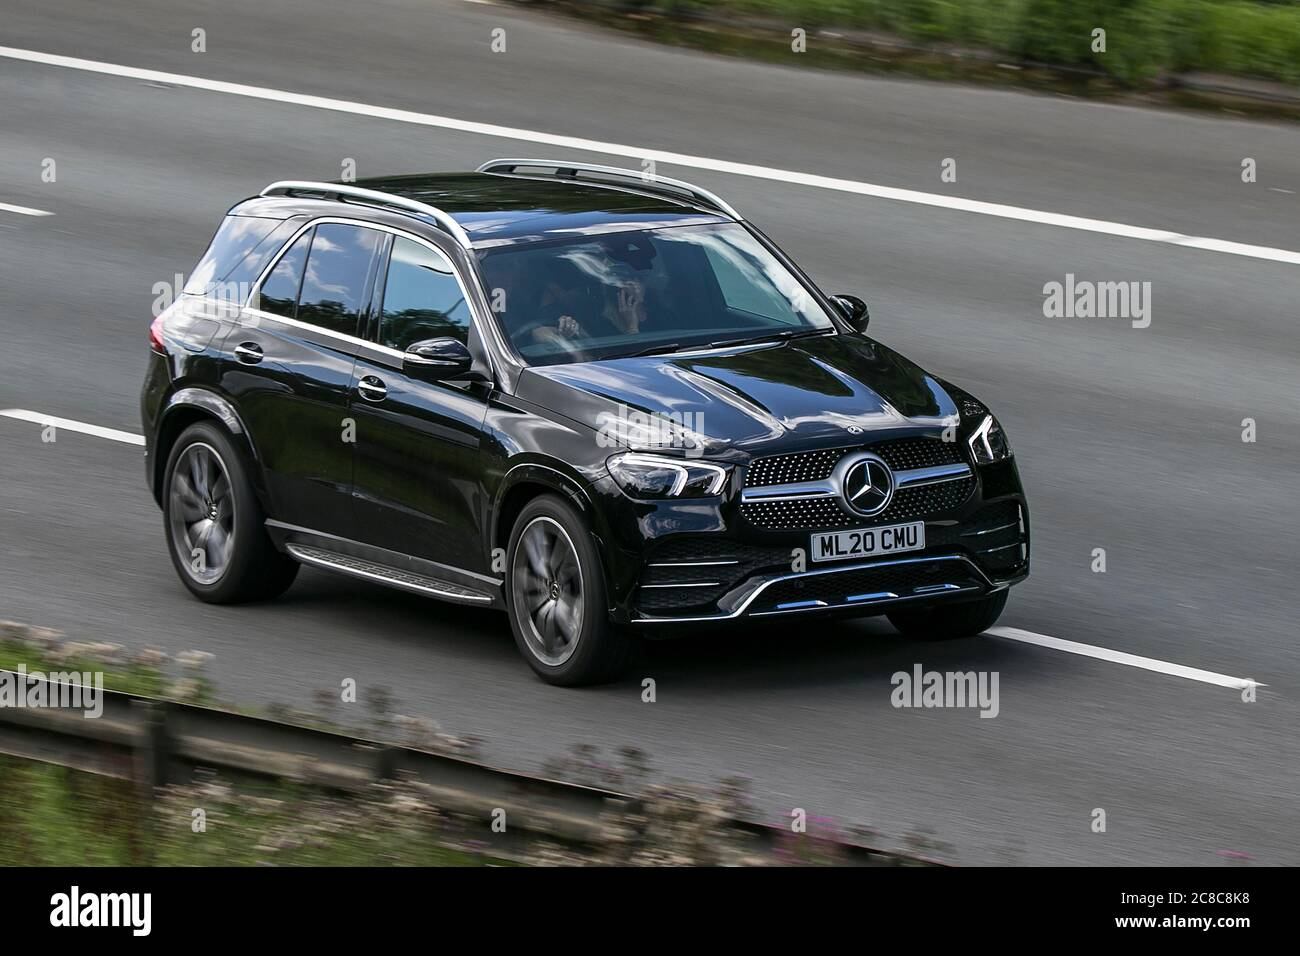 Mercedes Amg Suv High Resolution Stock Photography And Images Alamy